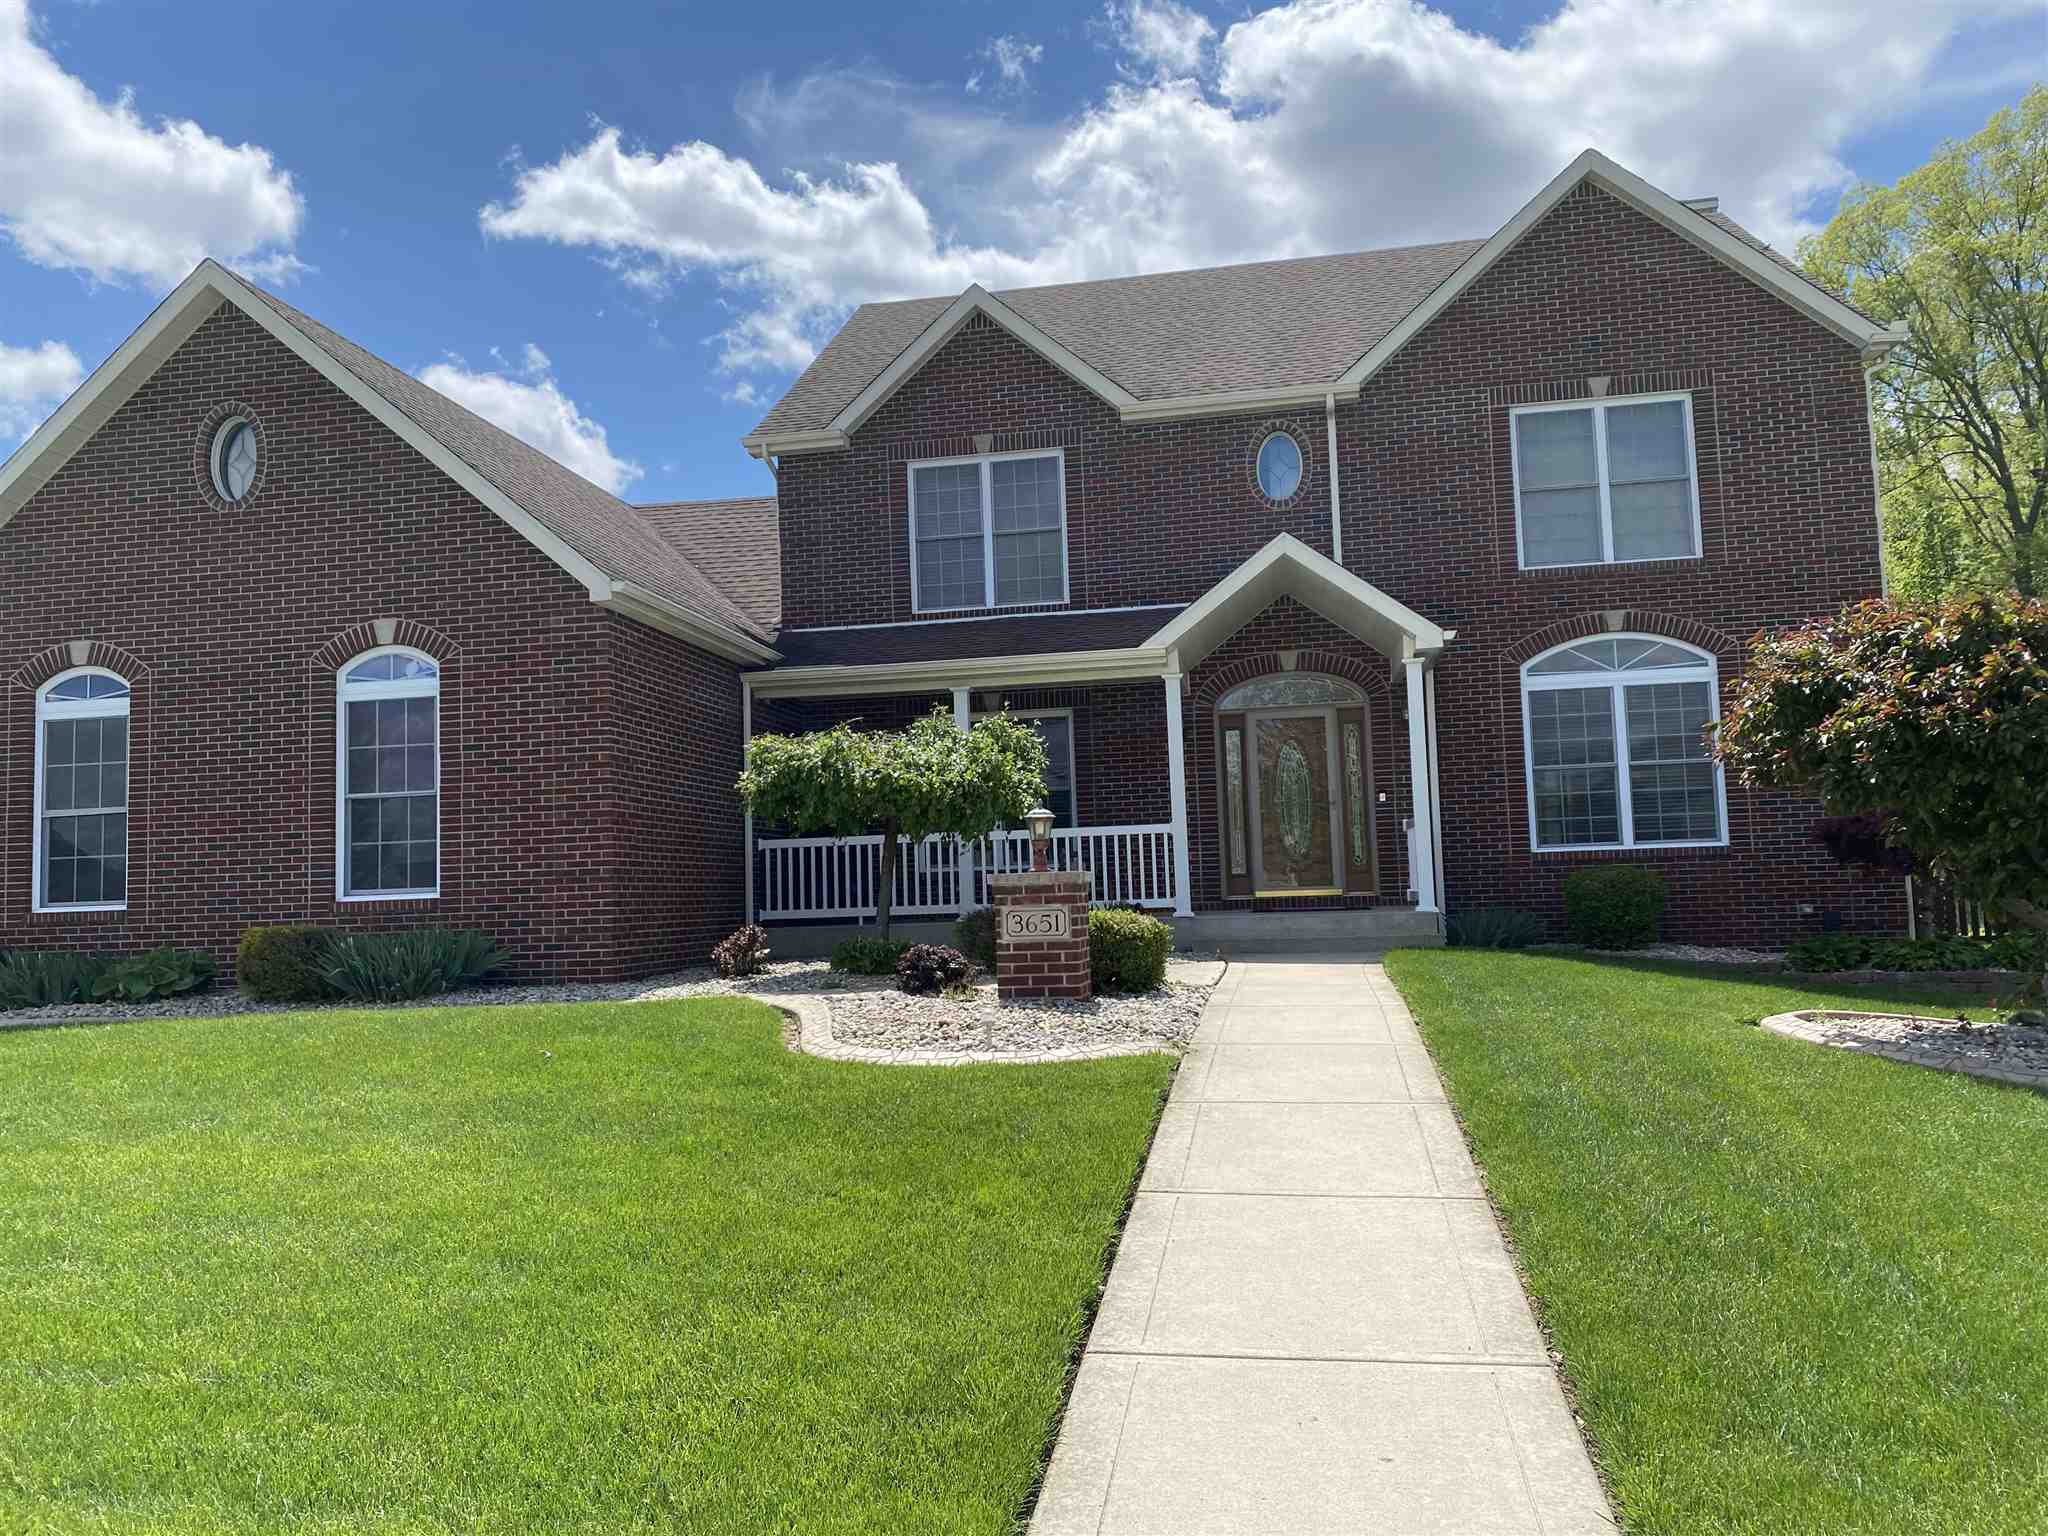 3651 White Pine Drive, New Haven, IN 46774